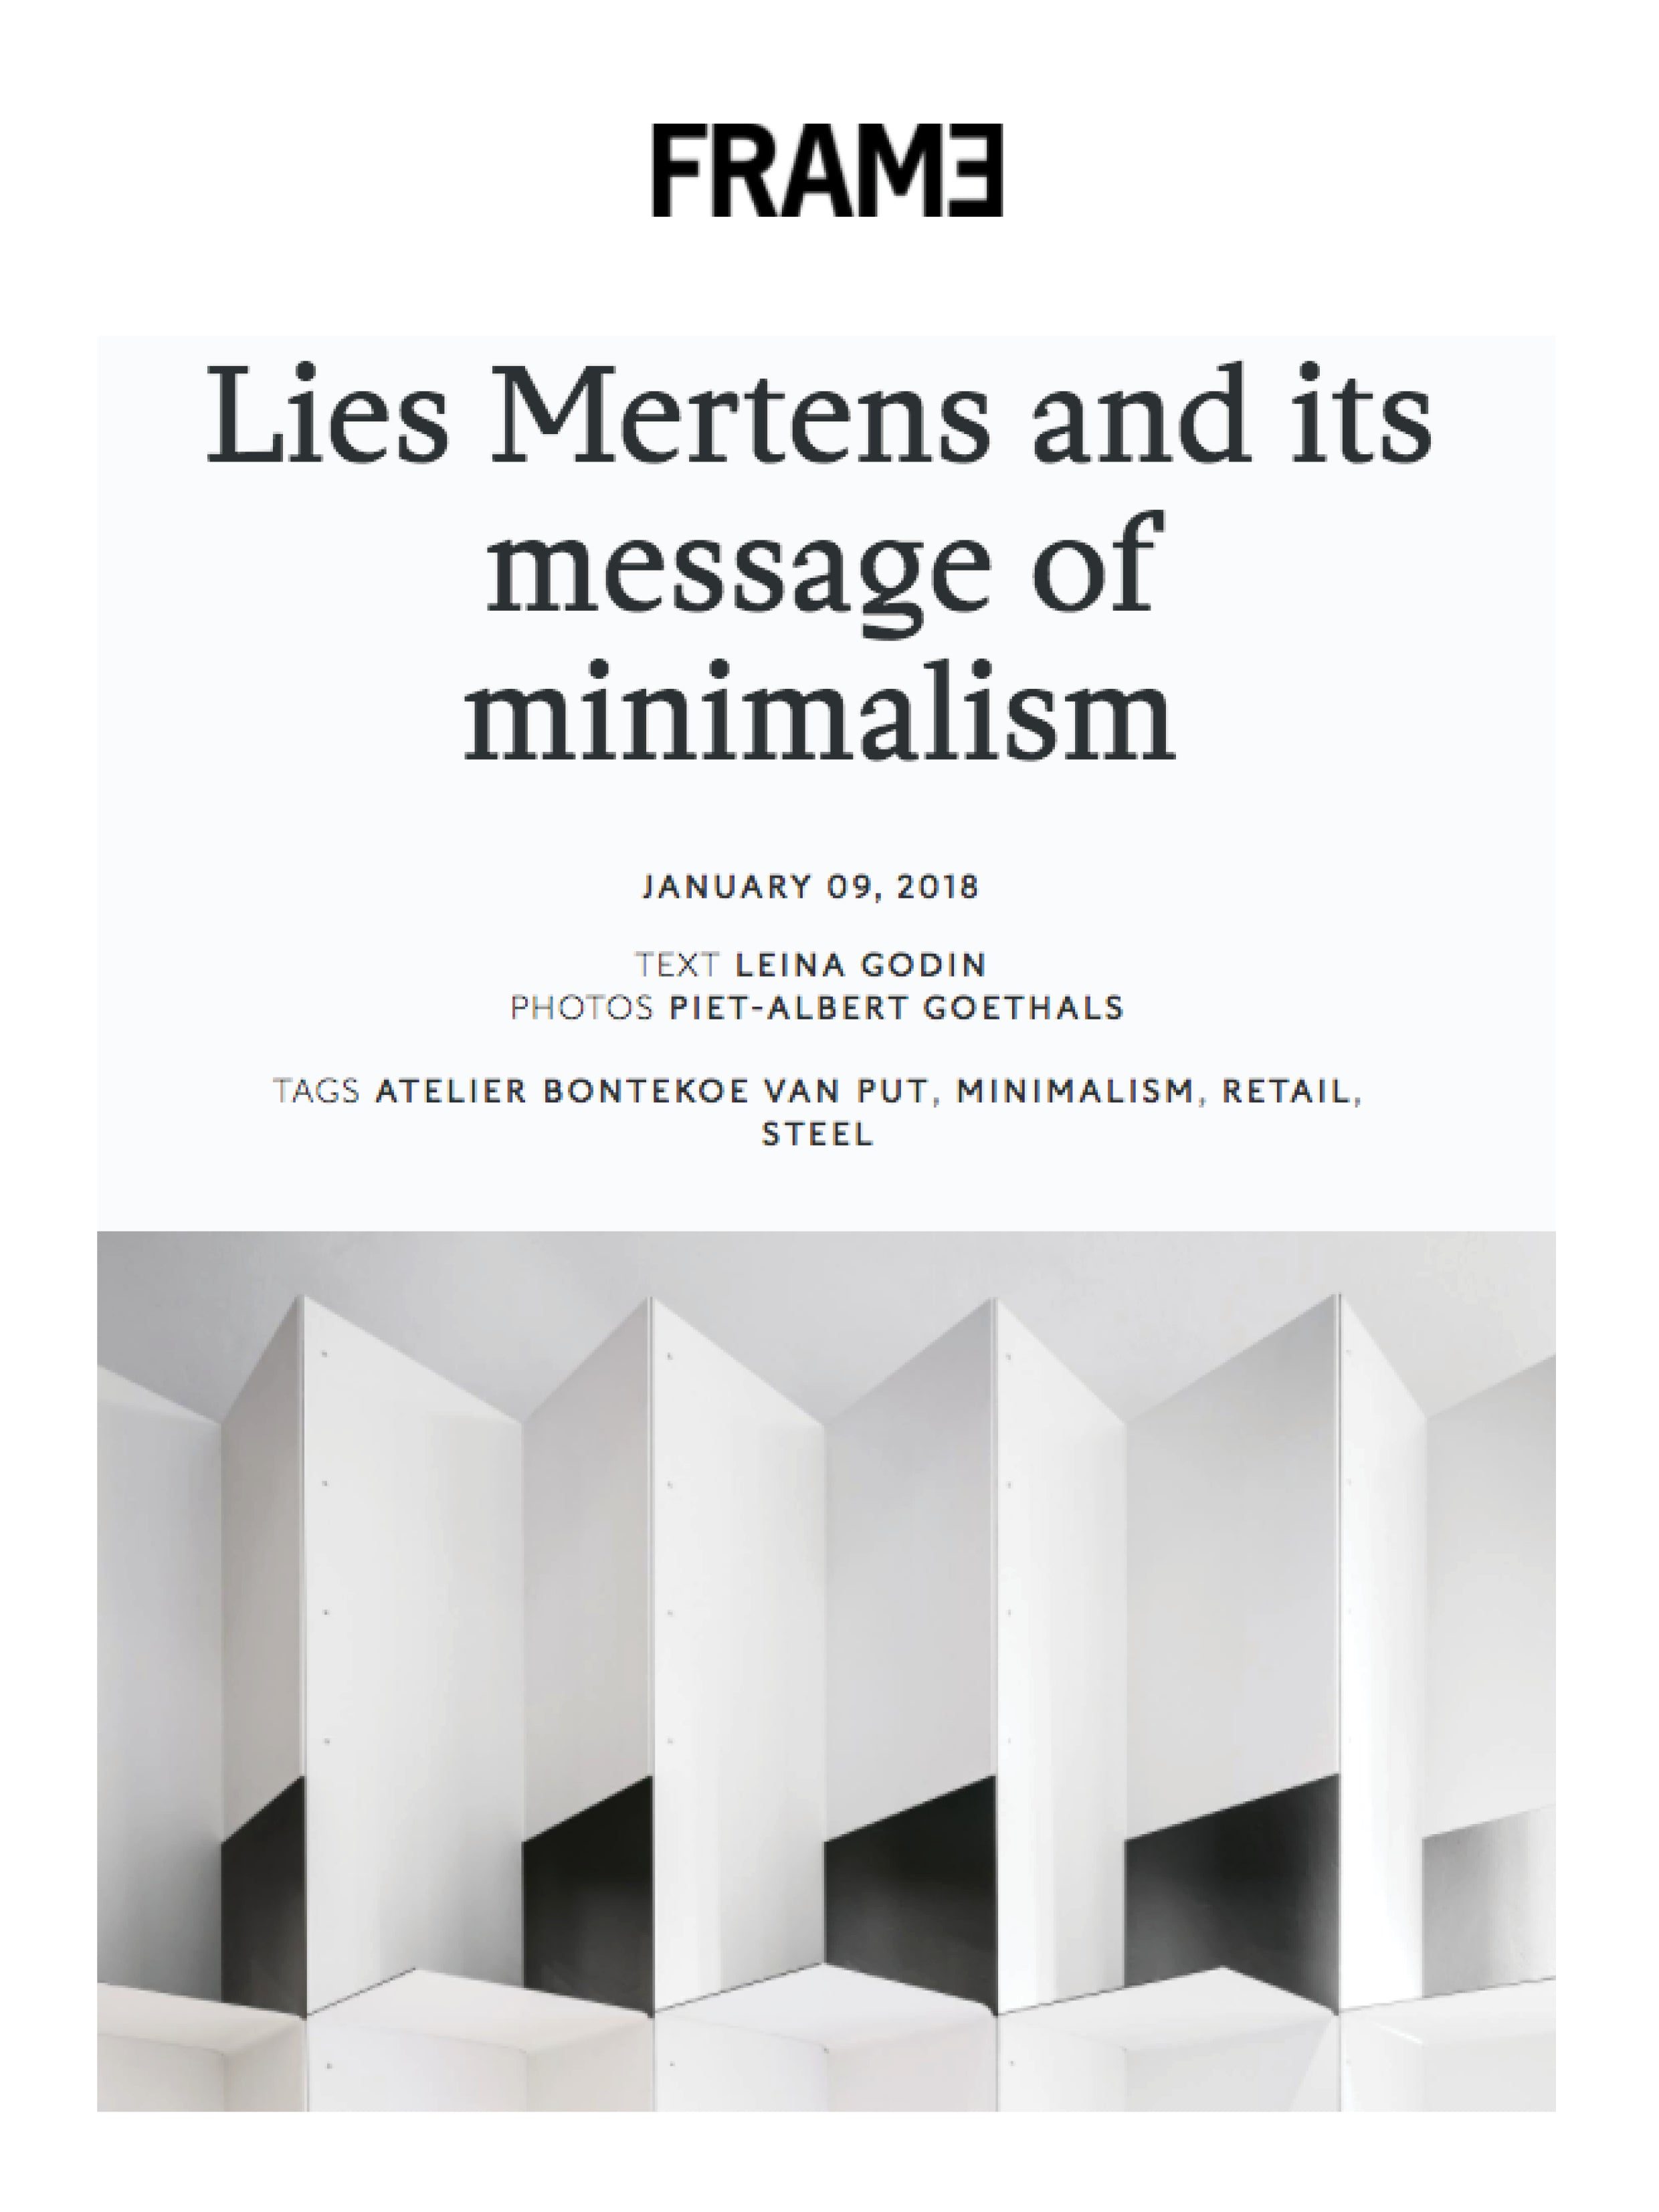 Lies mertens and its message of minimalism